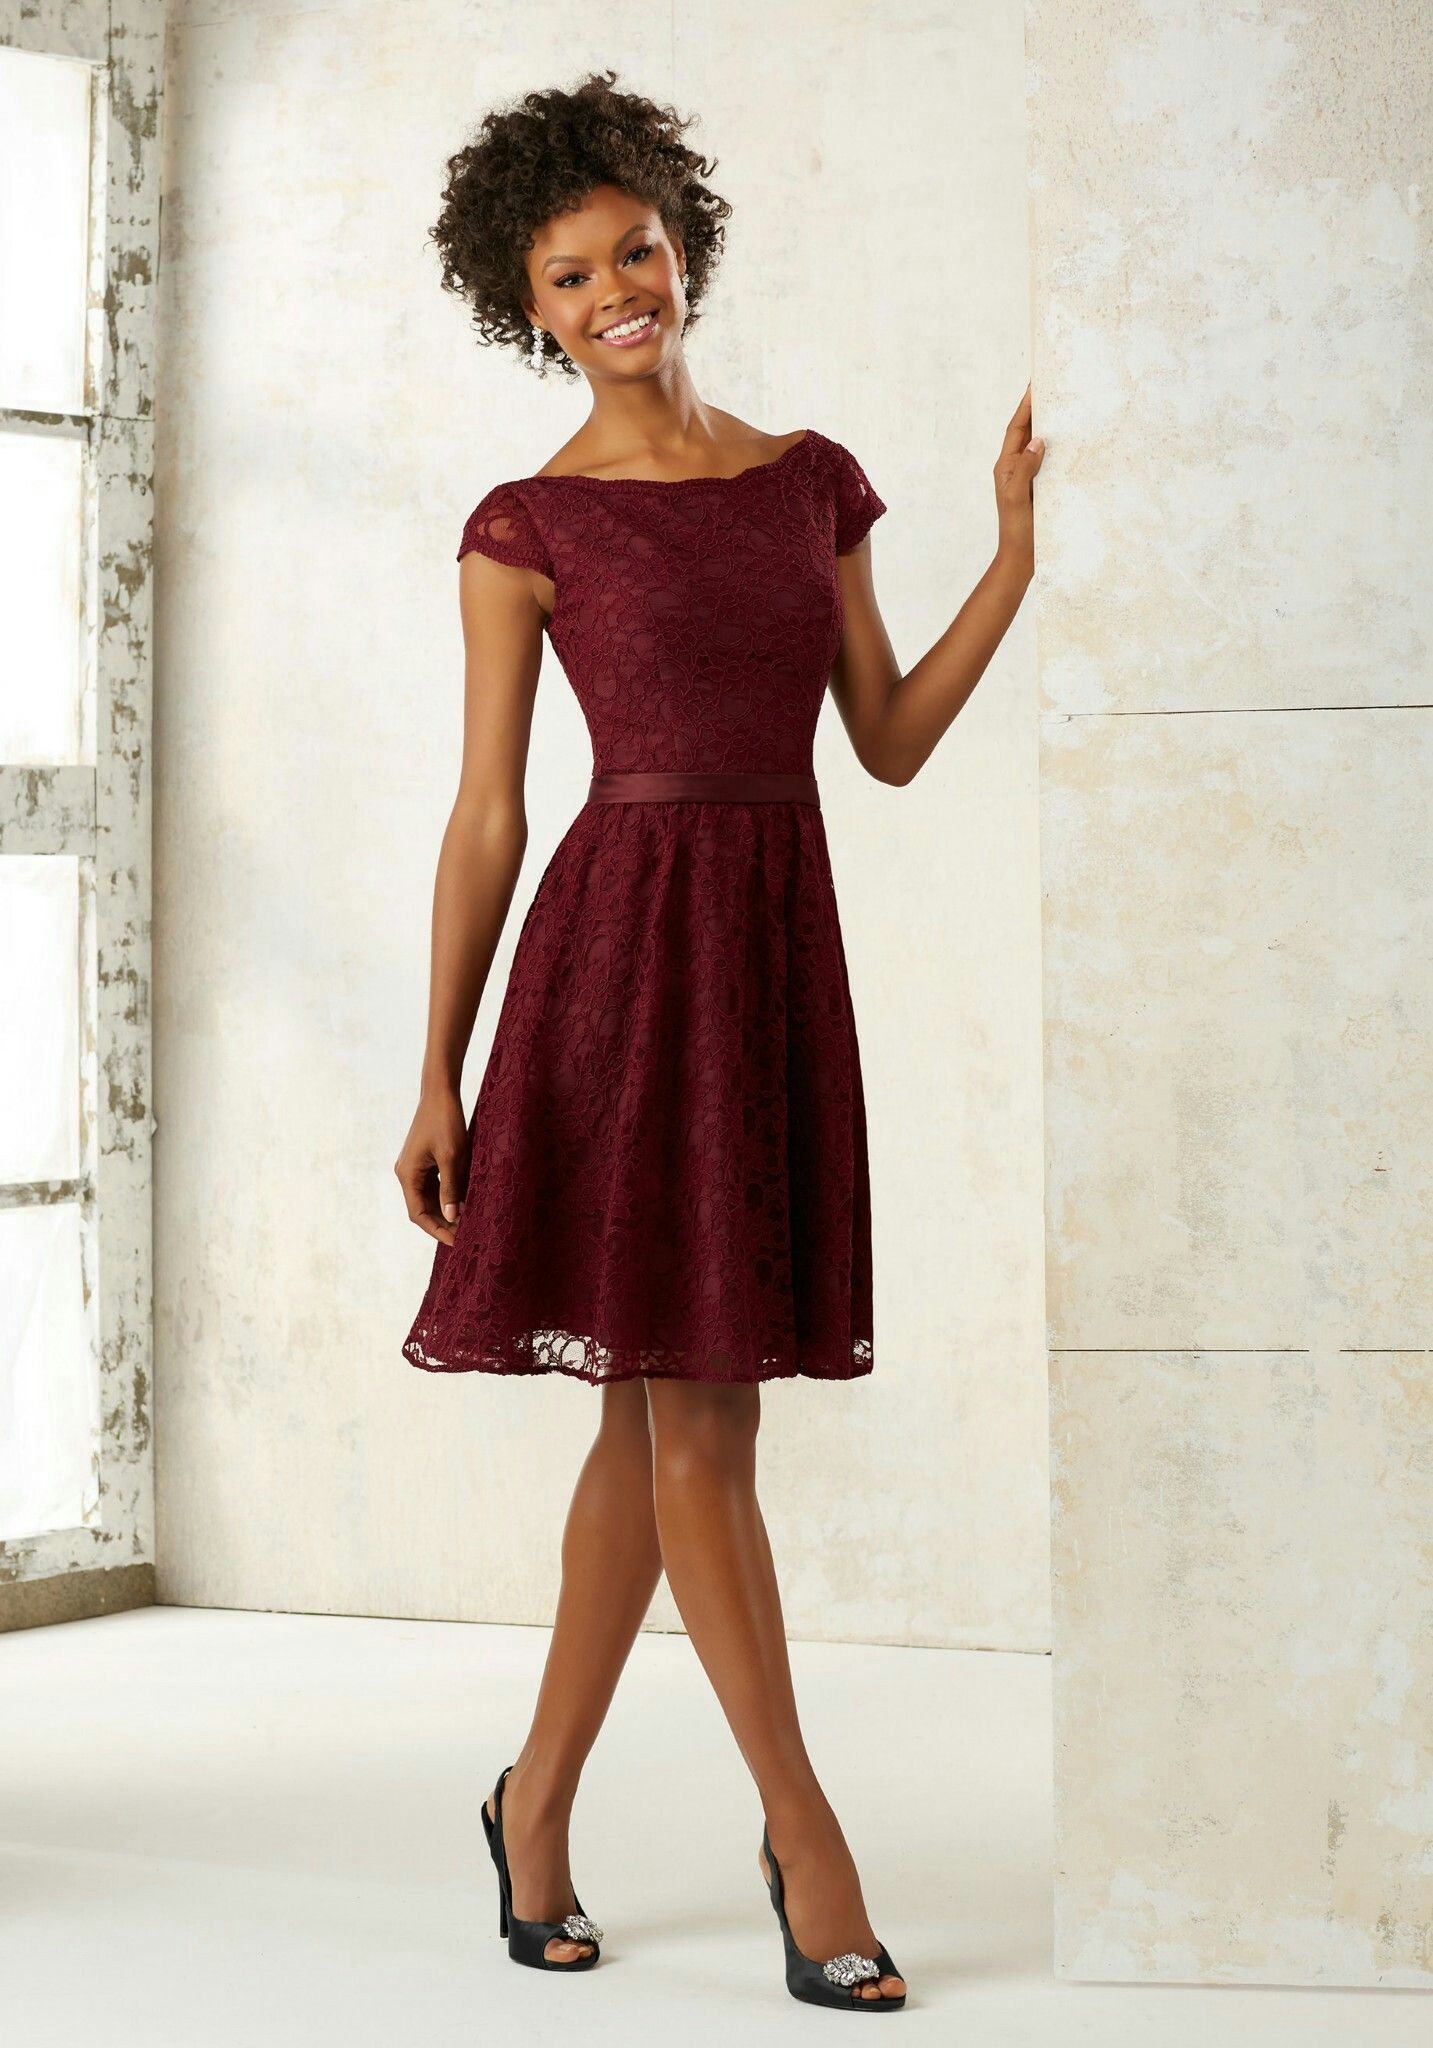 Mori lee bridesmaid dress 21518 in bordeaux dresses pinterest mori lee bridesmaid dress 21518 in bordeaux ombrellifo Image collections